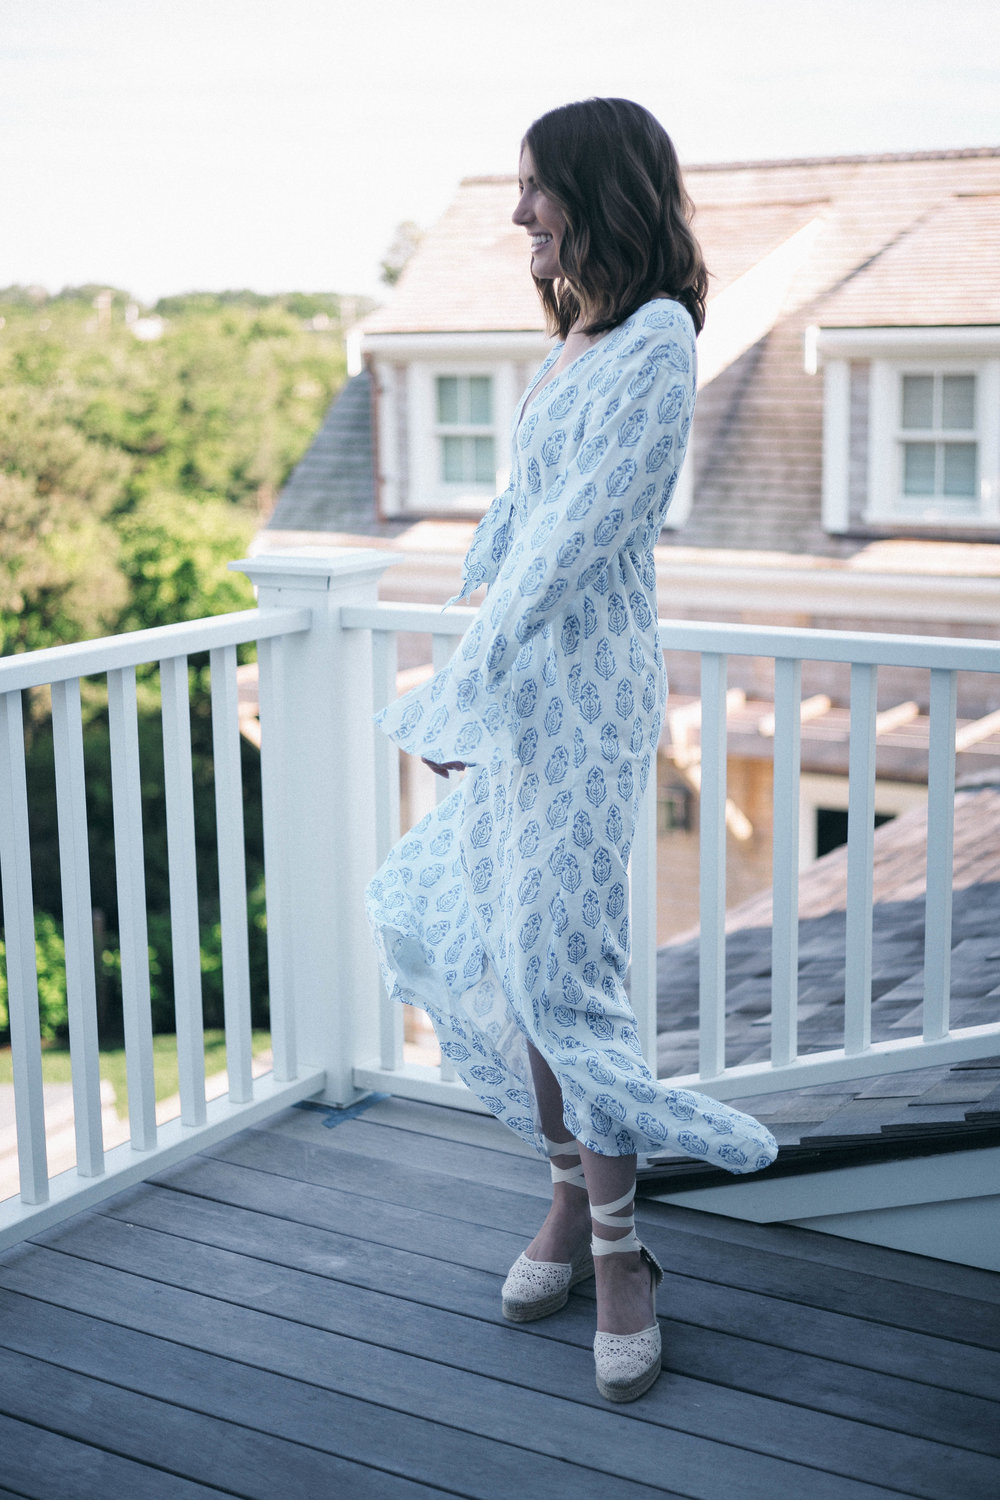 CJ Laing - For your summer essentials, CJ Laing is perfect for the preppy meets bohemian girl. There is one located in town and another (but smaller) boutique in Sconset.